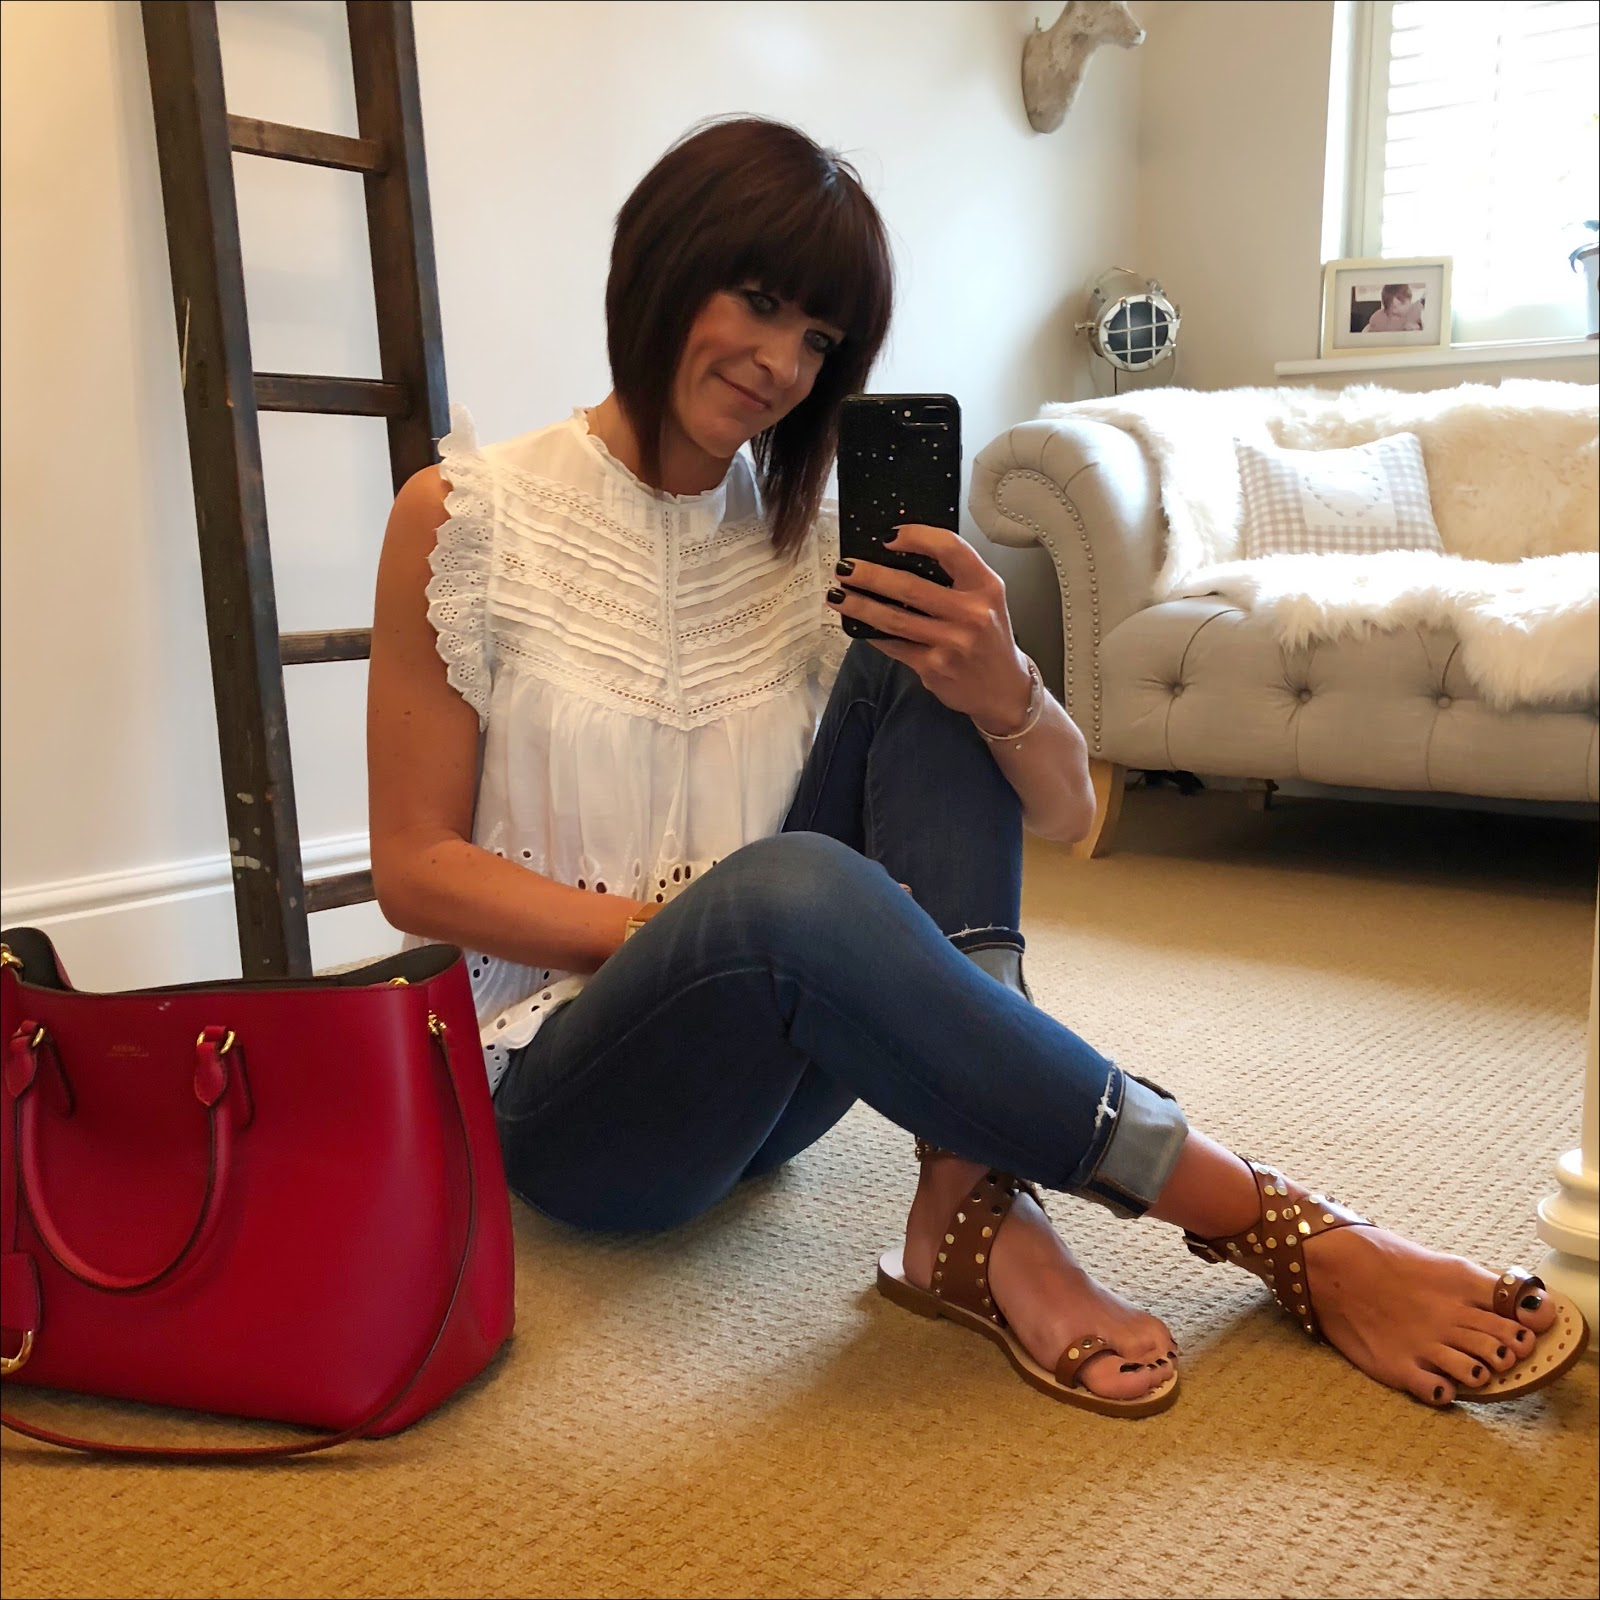 my midlife fashion, zara embroidered blouse with perforations, j crew straight leg jeans, basalt sarah summer studded sandals, lauren ralph lauren dryden tote bag